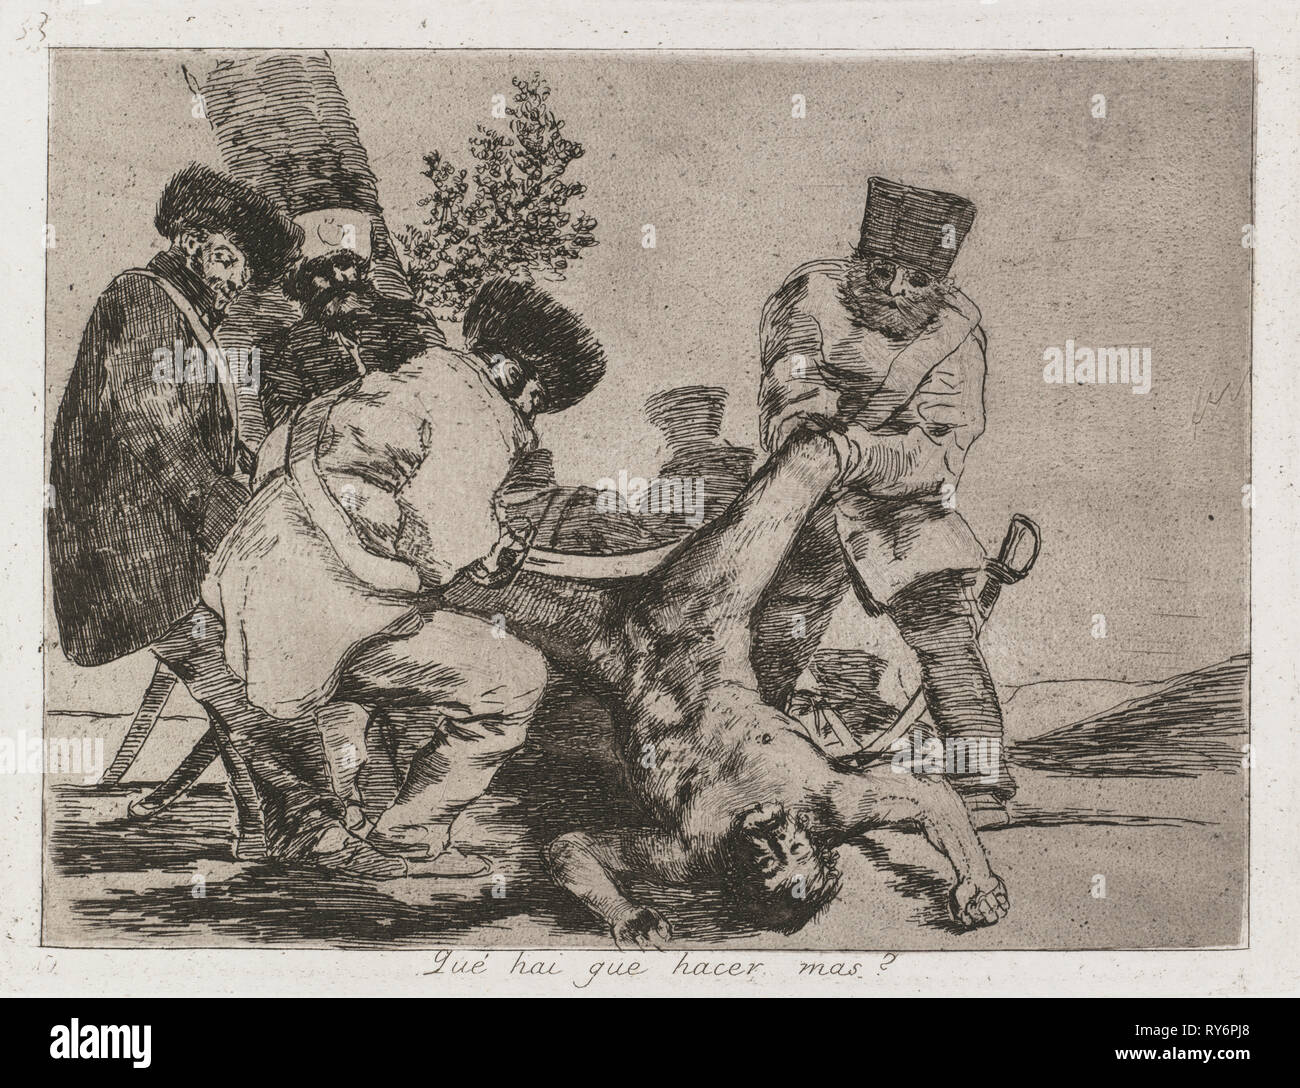 Disasters of War: Pl. 33, What more can one do?  , 1810-1813 . Francisco de Goya (Spanish, 1746-1828), Real Academia. Etching and aquatint; sheet: 24.3 x 33.3 cm (9 9/16 x 13 1/8 in.); platemark: 15.8 x 20.6 cm (6 1/4 x 8 1/8 in.); to borderline: 13.9 x 18.7 cm (5 1/2 x 7 3/8 in - Stock Image